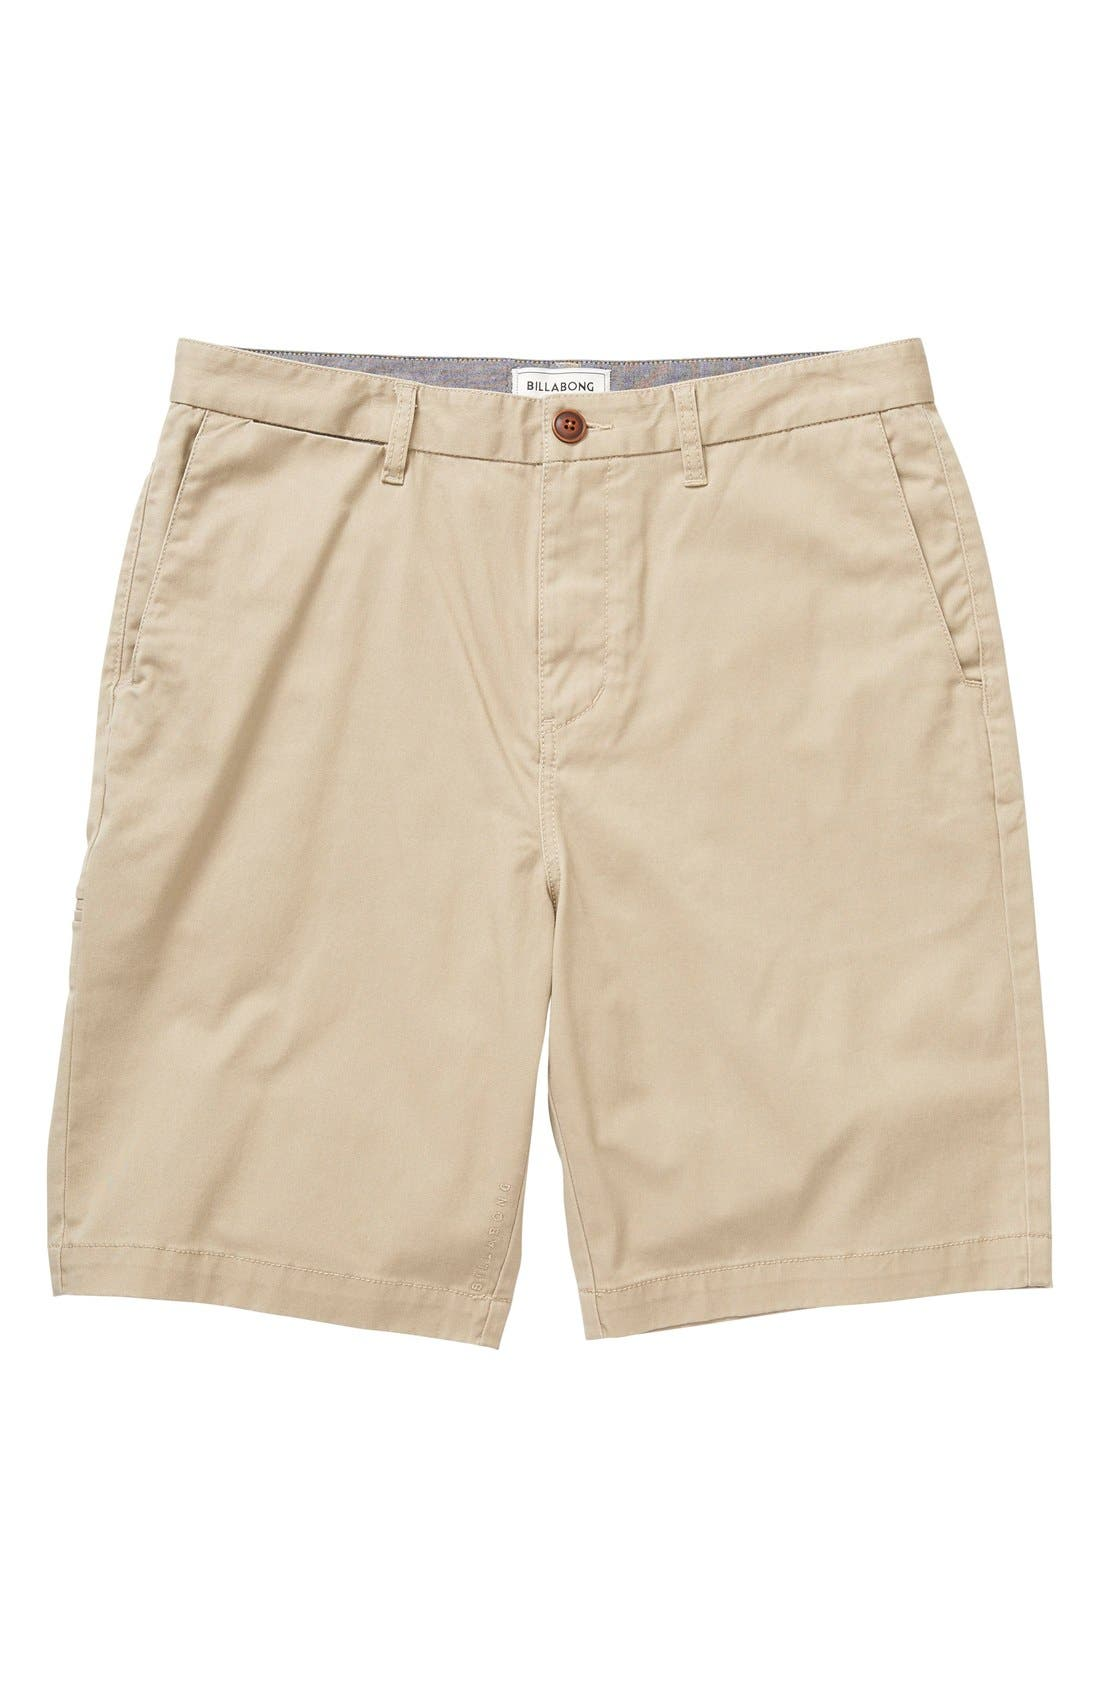 'Carter' Cotton Twill Shorts,                             Main thumbnail 3, color,